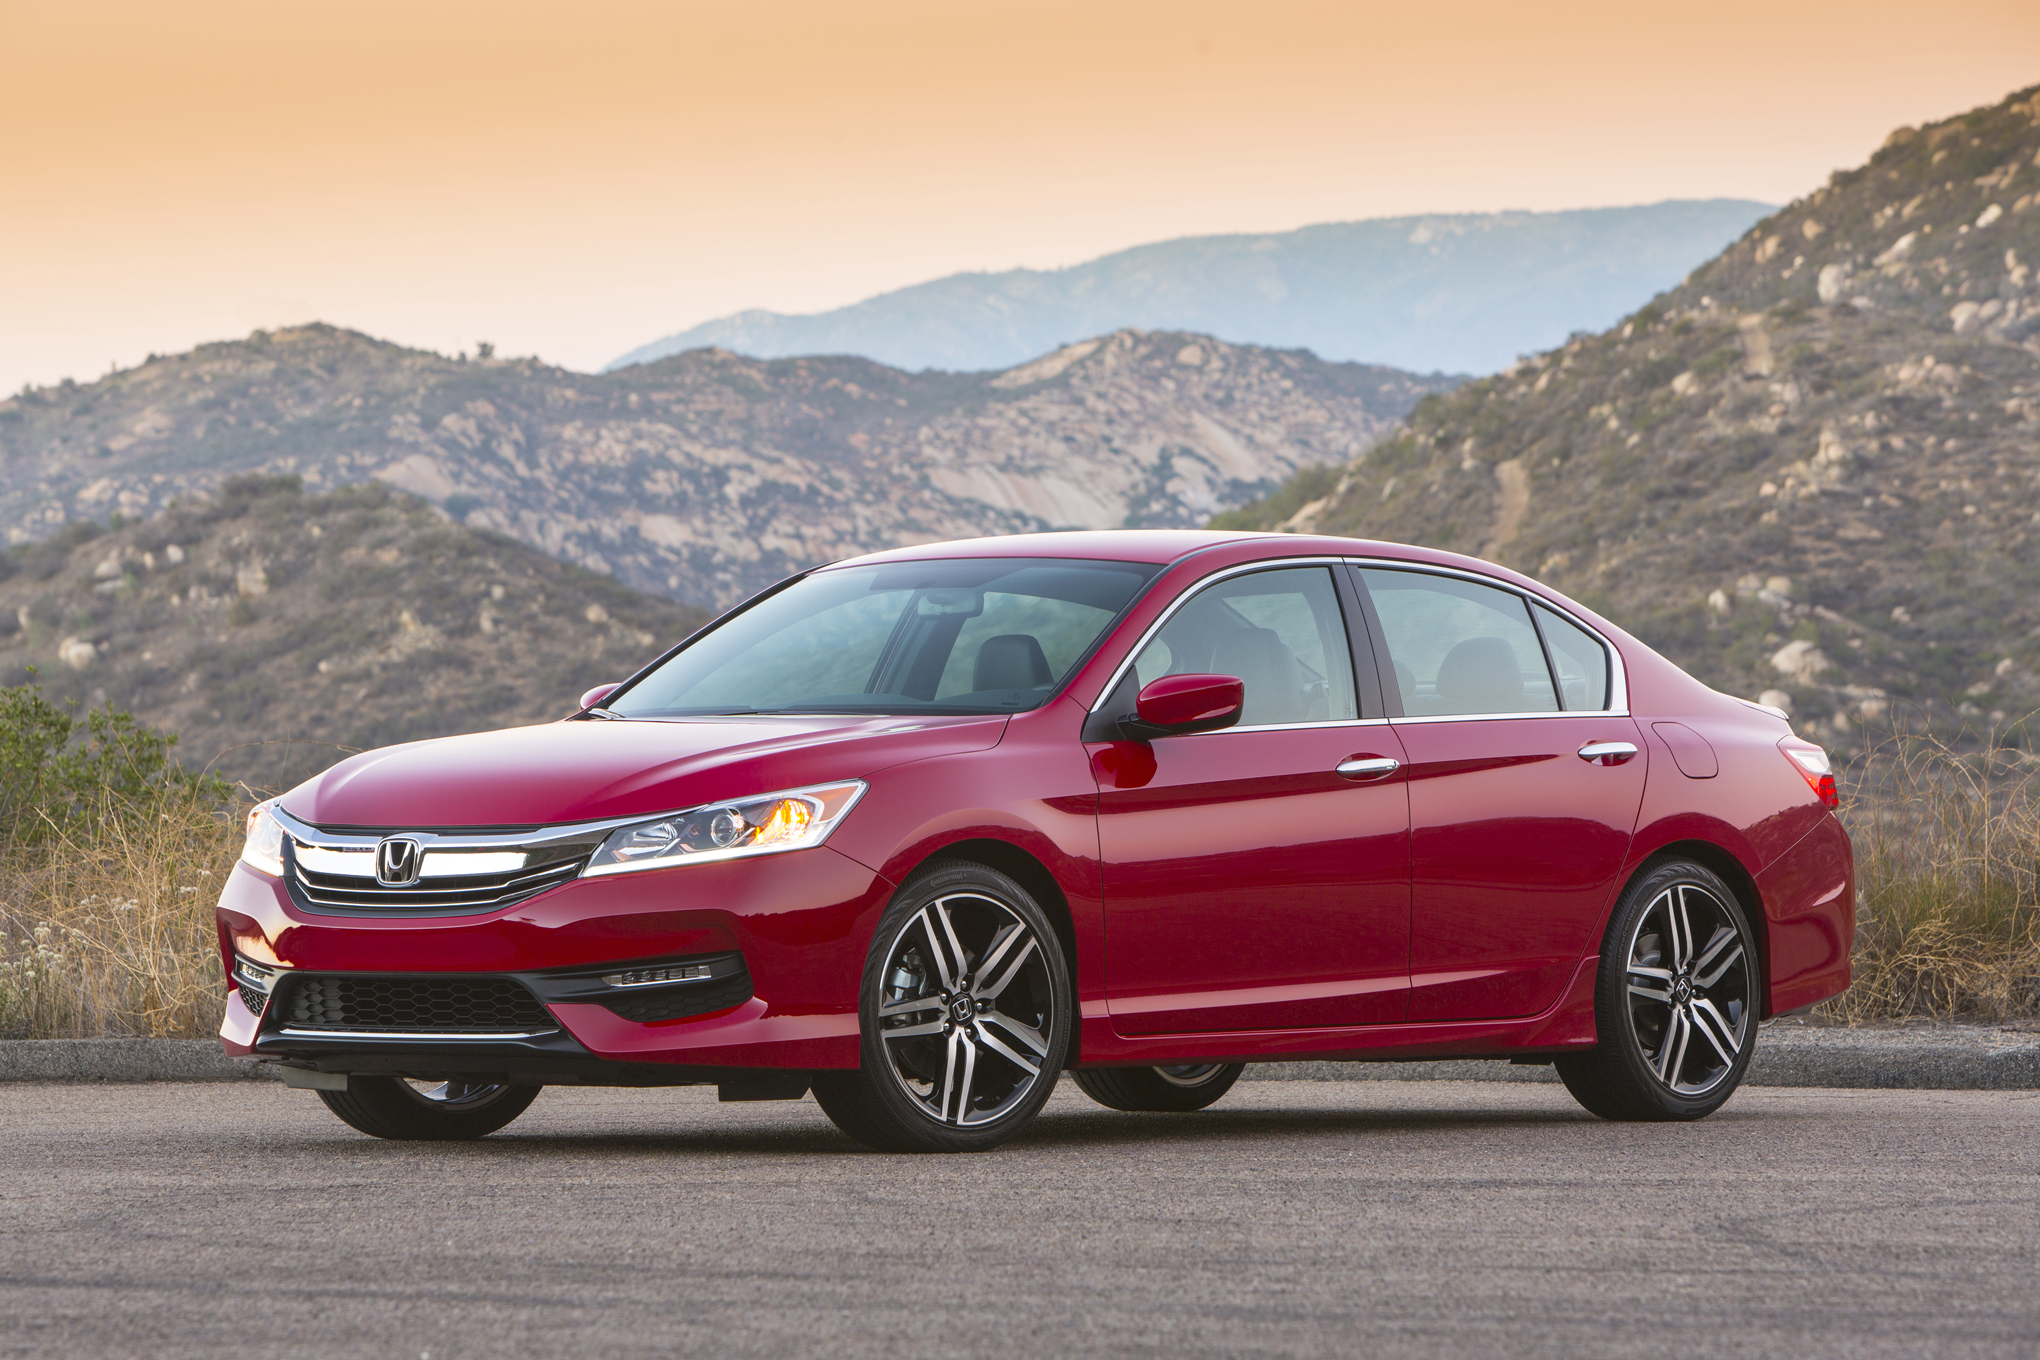 2016 Honda Accord #11